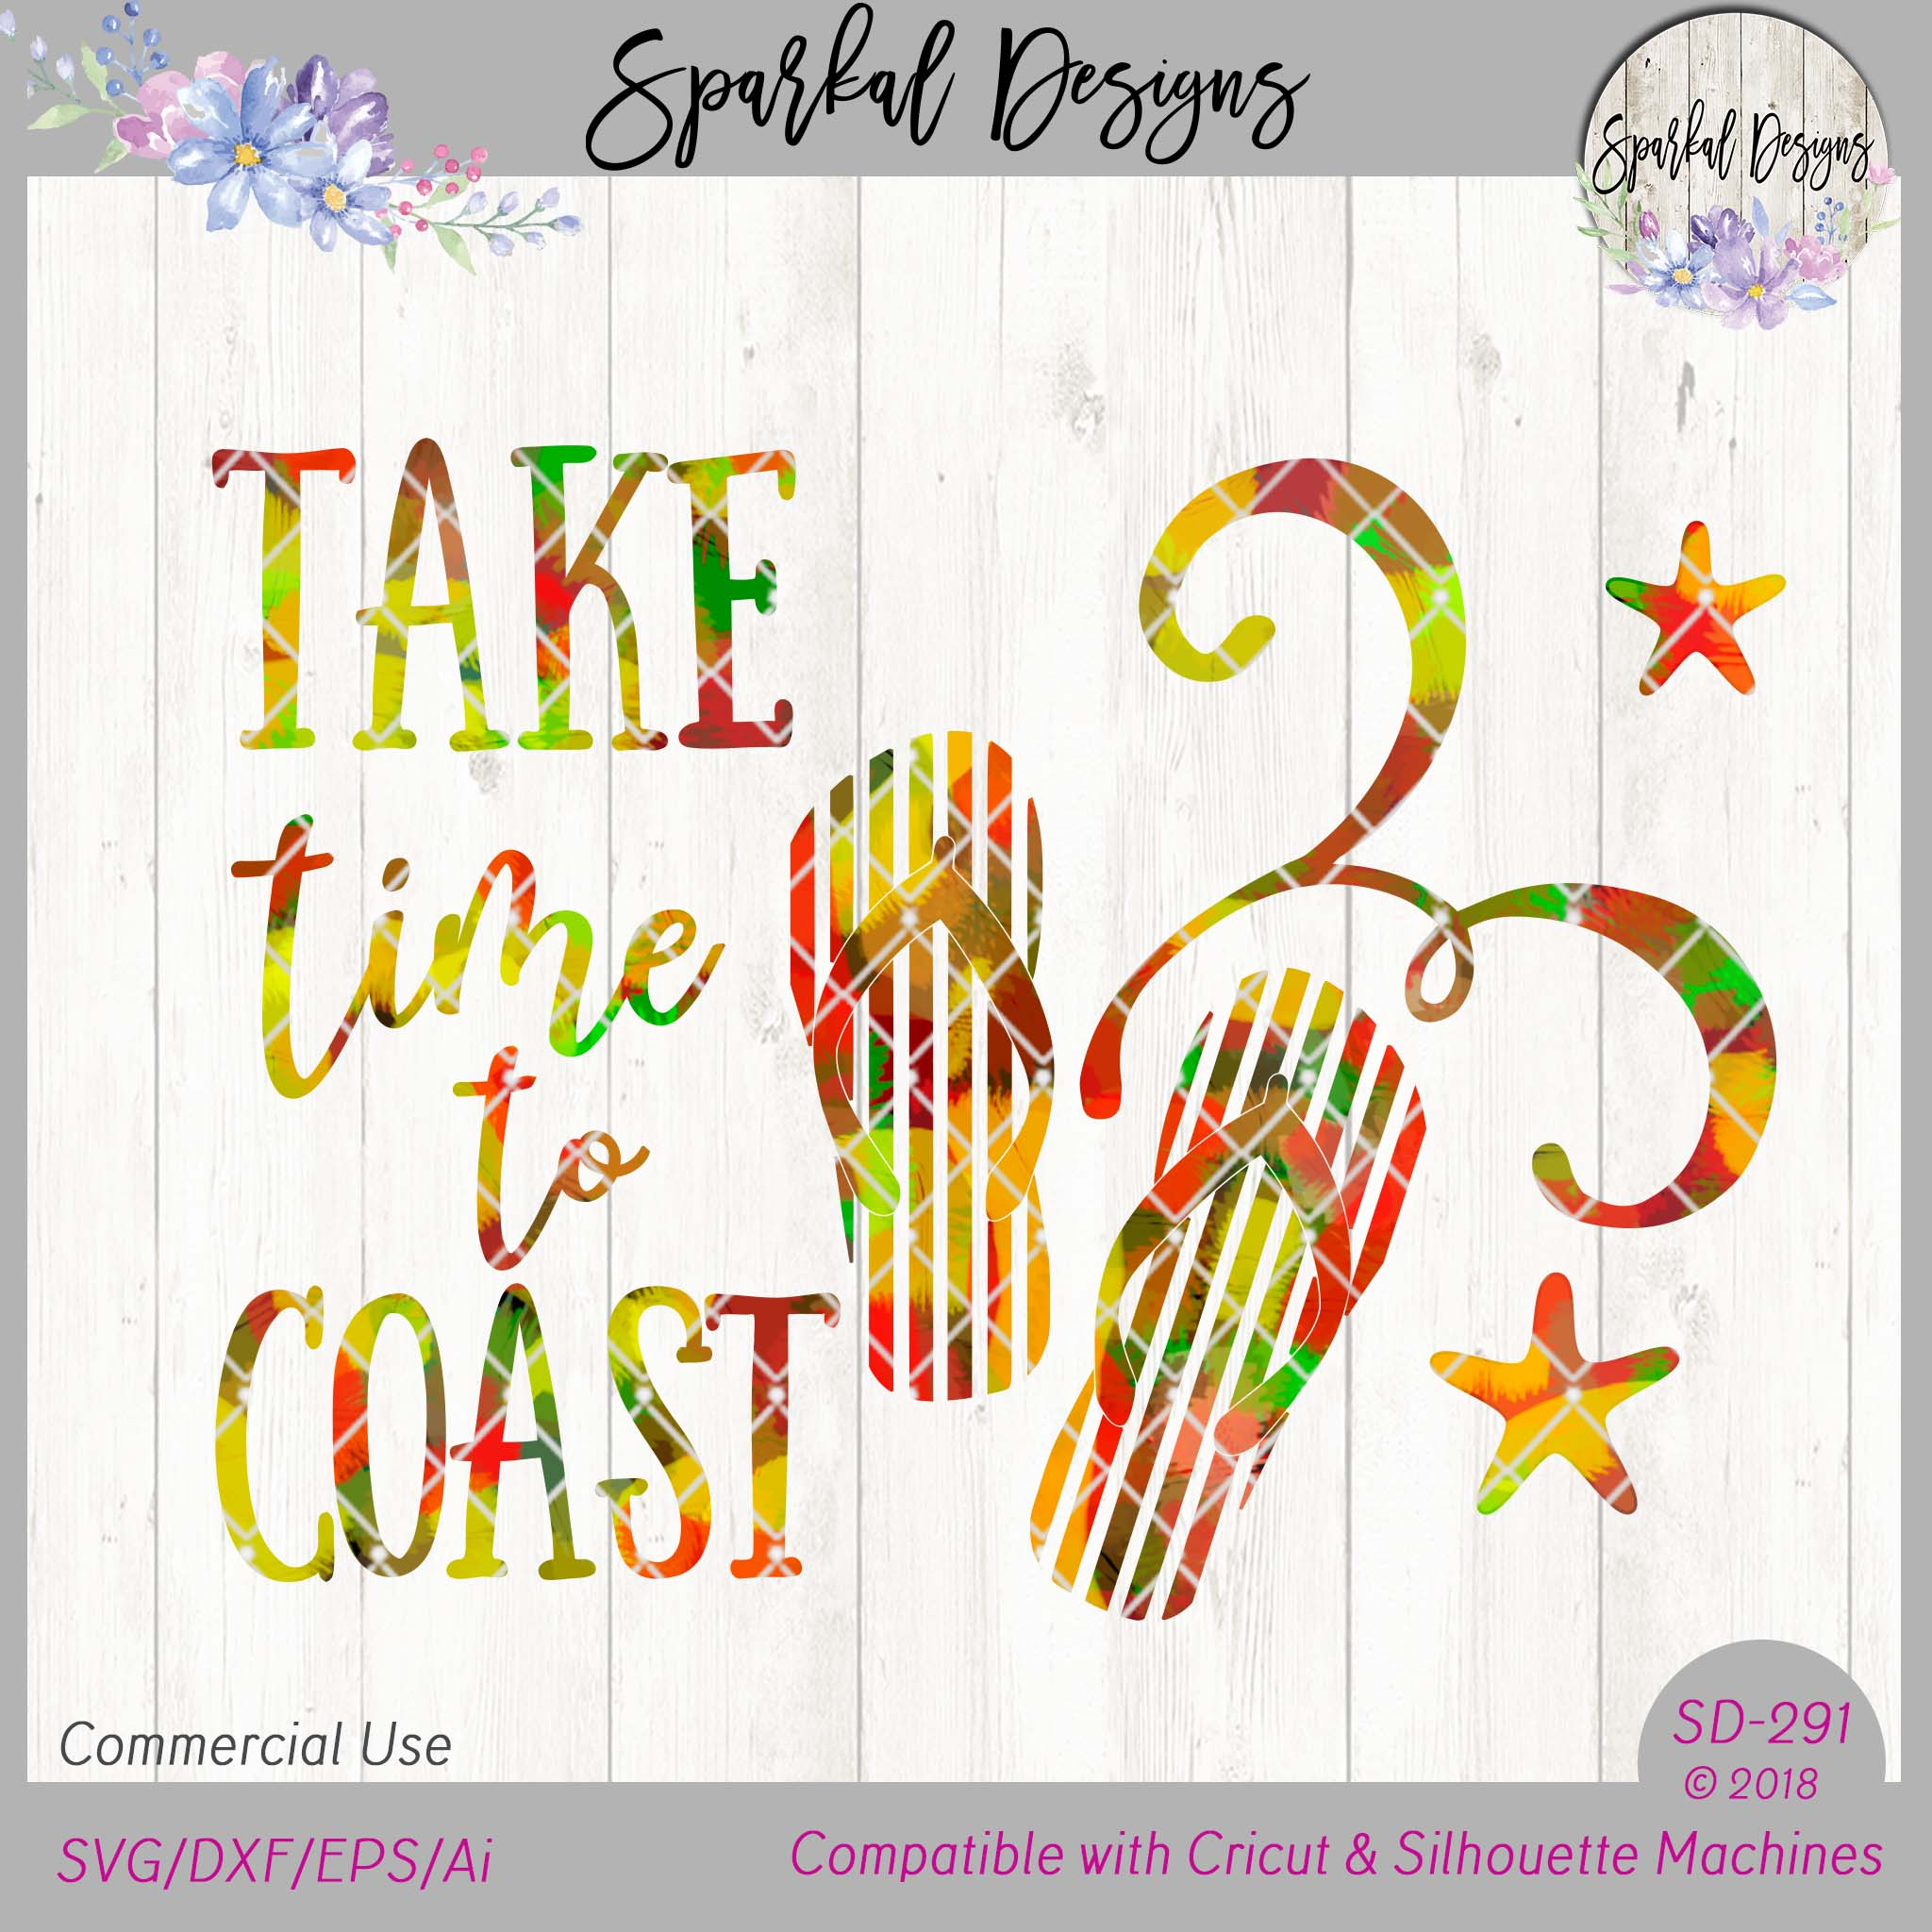 Take Time to Coast, SVG Cutting File, Coastal Flip Flops, Hot Mess Design, SVG/DXF/EPS SD291 example image 3